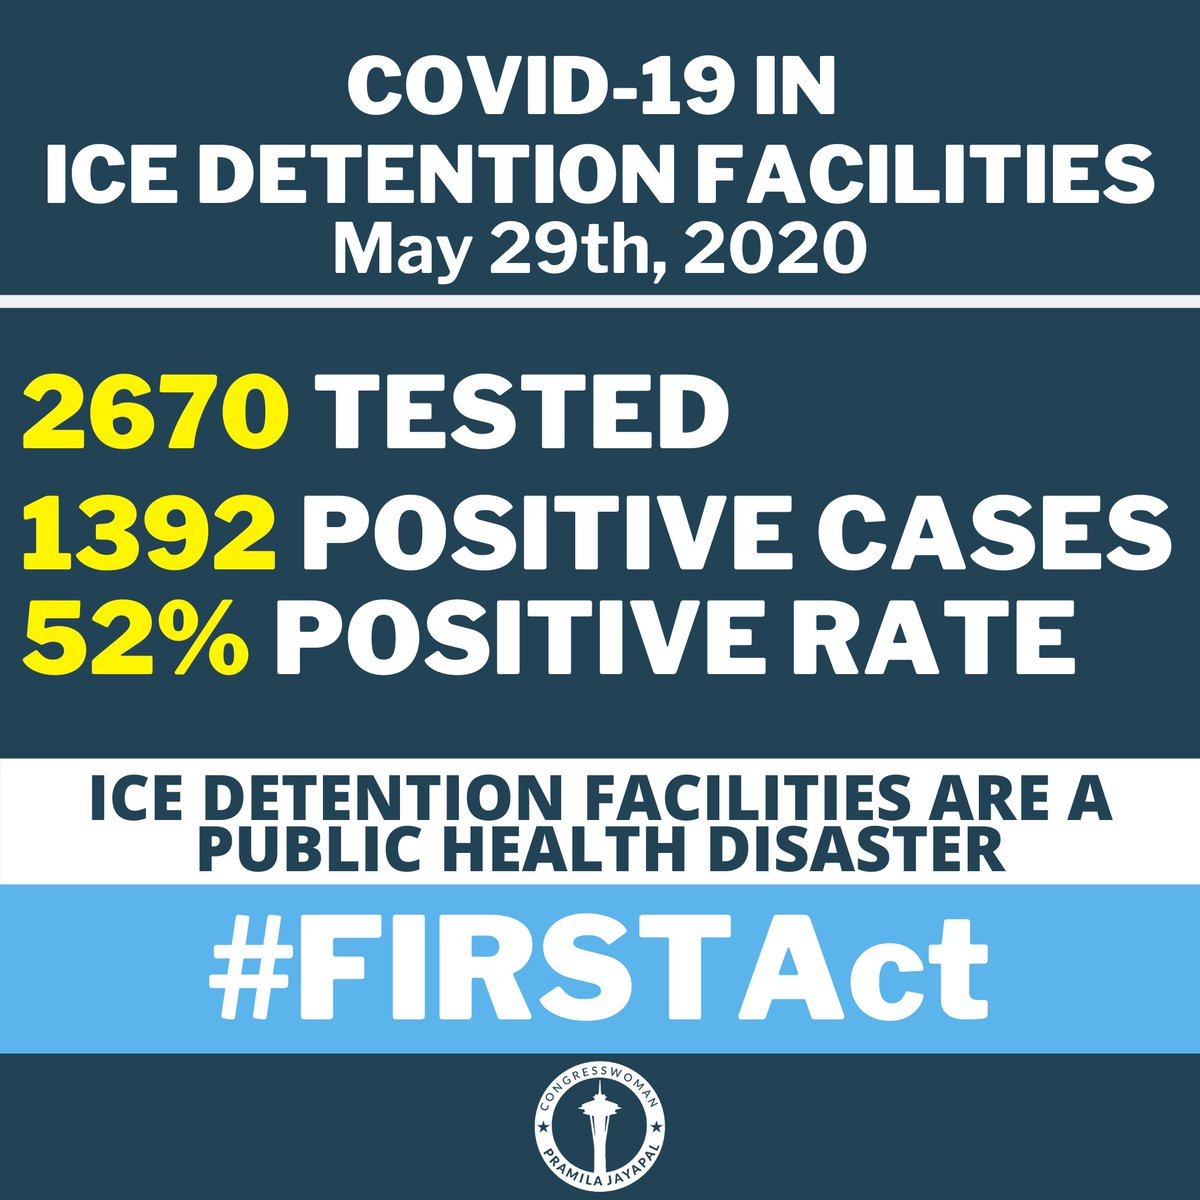 Every day that we don't pass my #FIRSTAct, more immigrant lives are put at direct risk. Now, there are 1392 positive cases with a positive testing rate of 52%. This can't wait any longer.